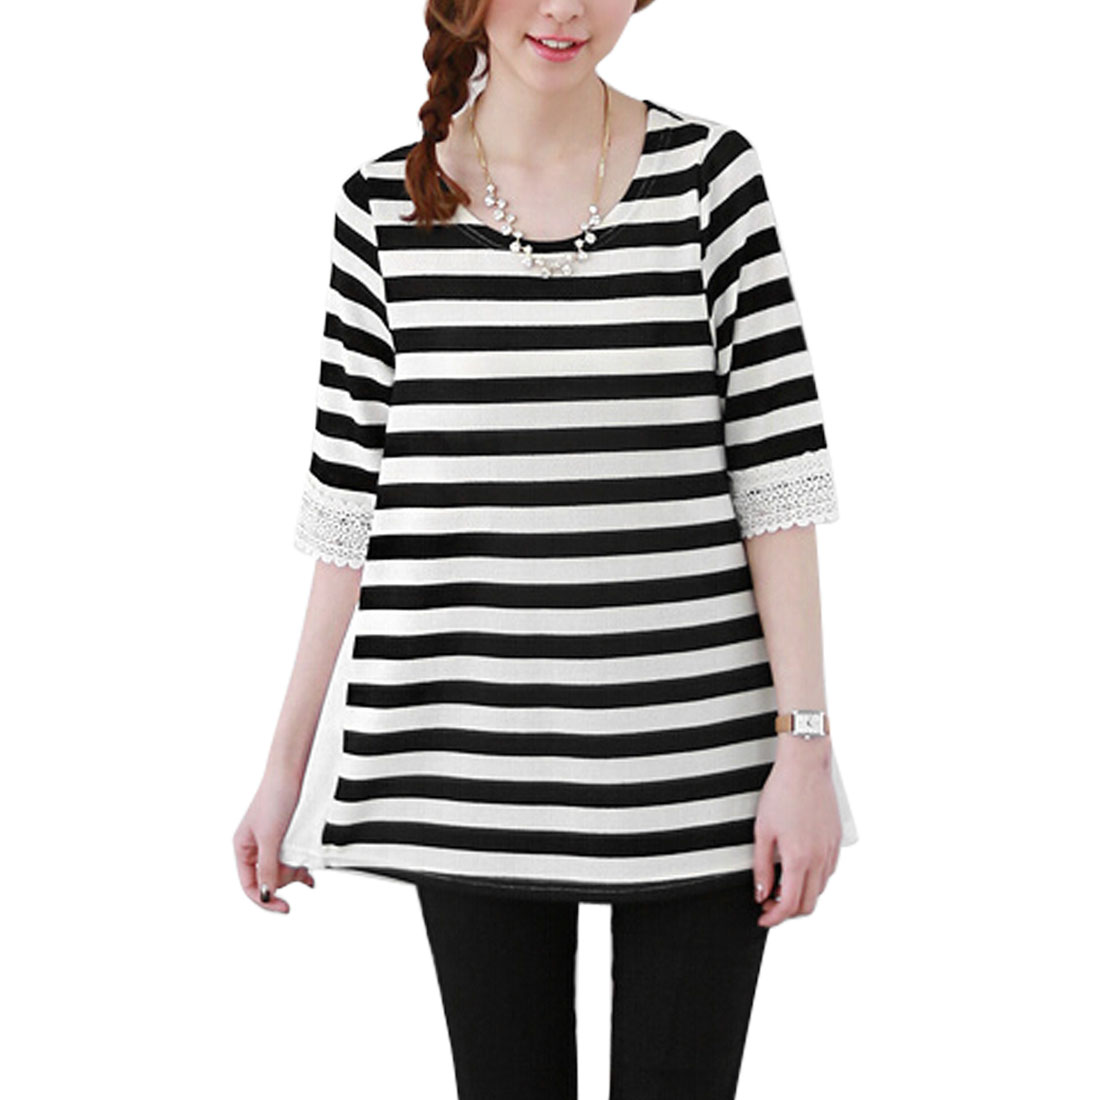 Women's Round Neck Elbow Sleeves Stripes Panel Design Tunic Tops Black White XS